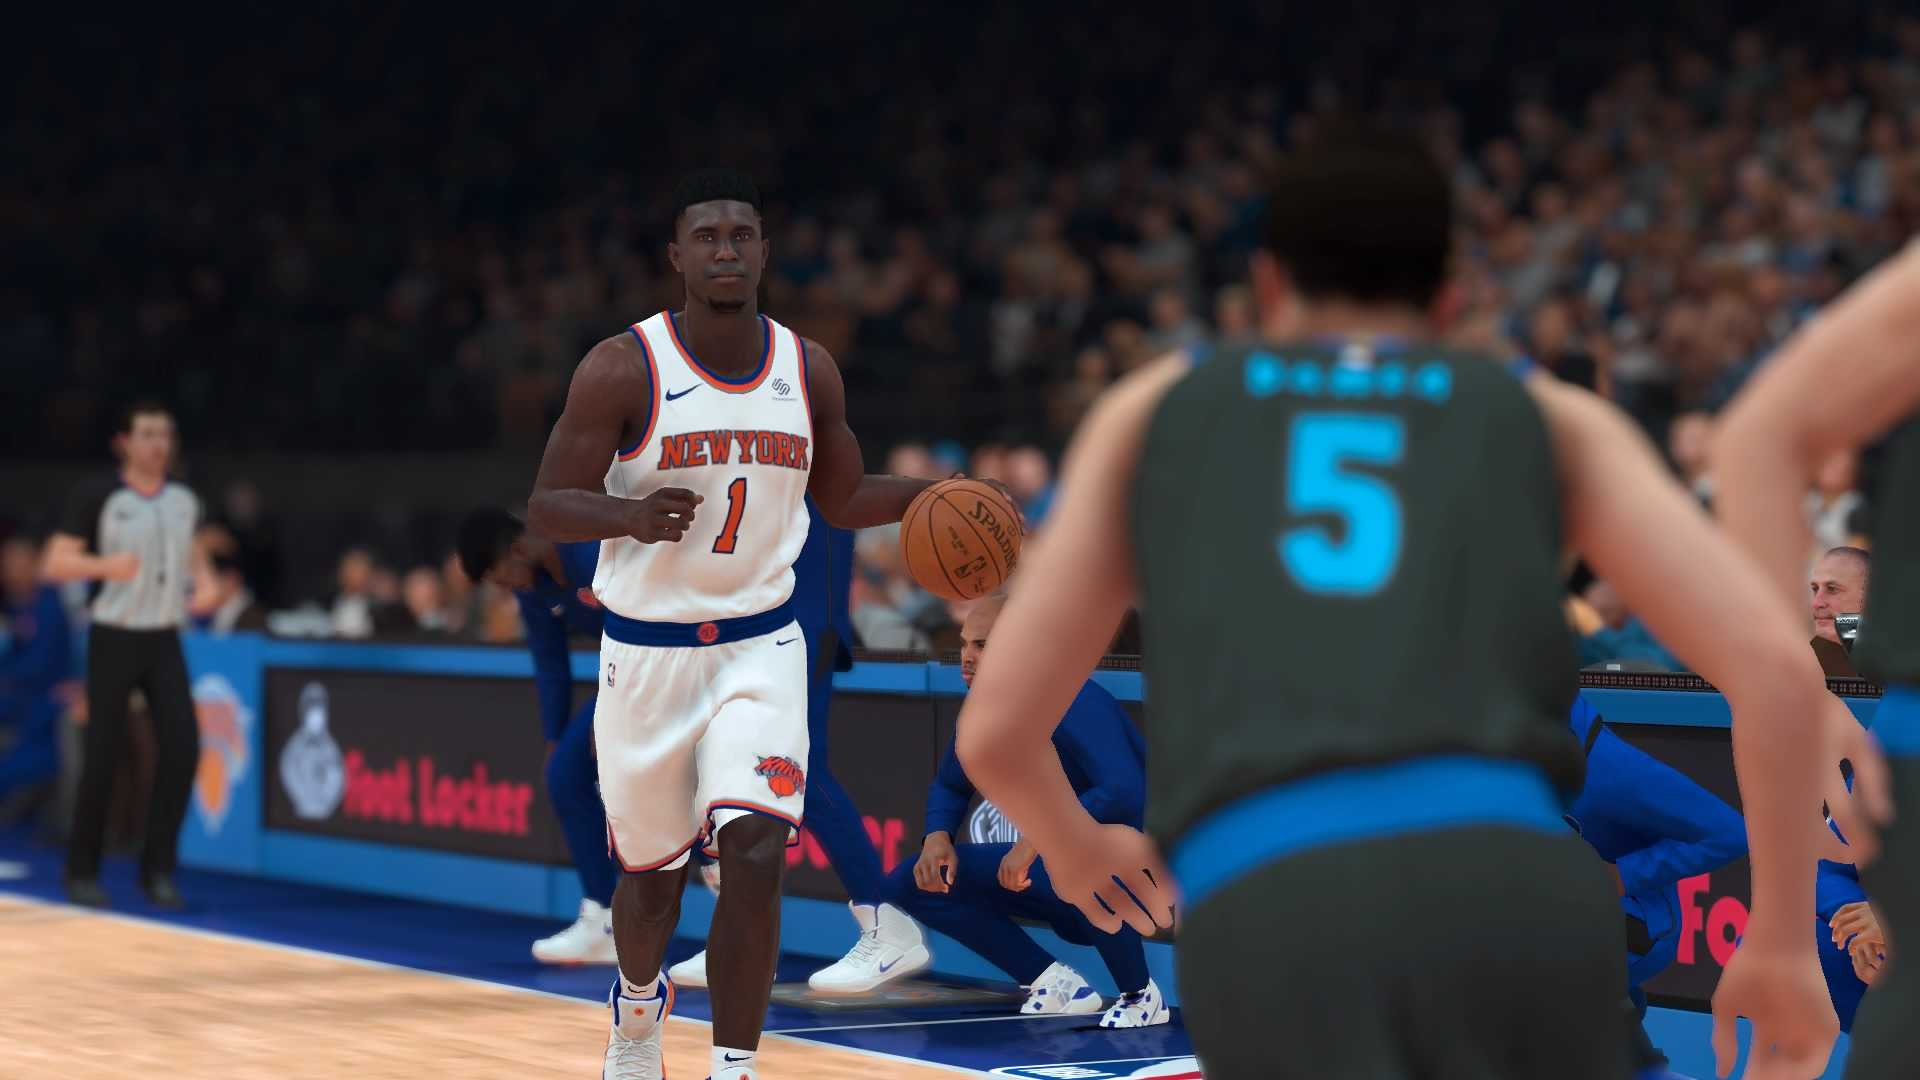 classic fit e7cde 23c85 What If? Featuring Zion Williamson Powered by NBA2K19 ...